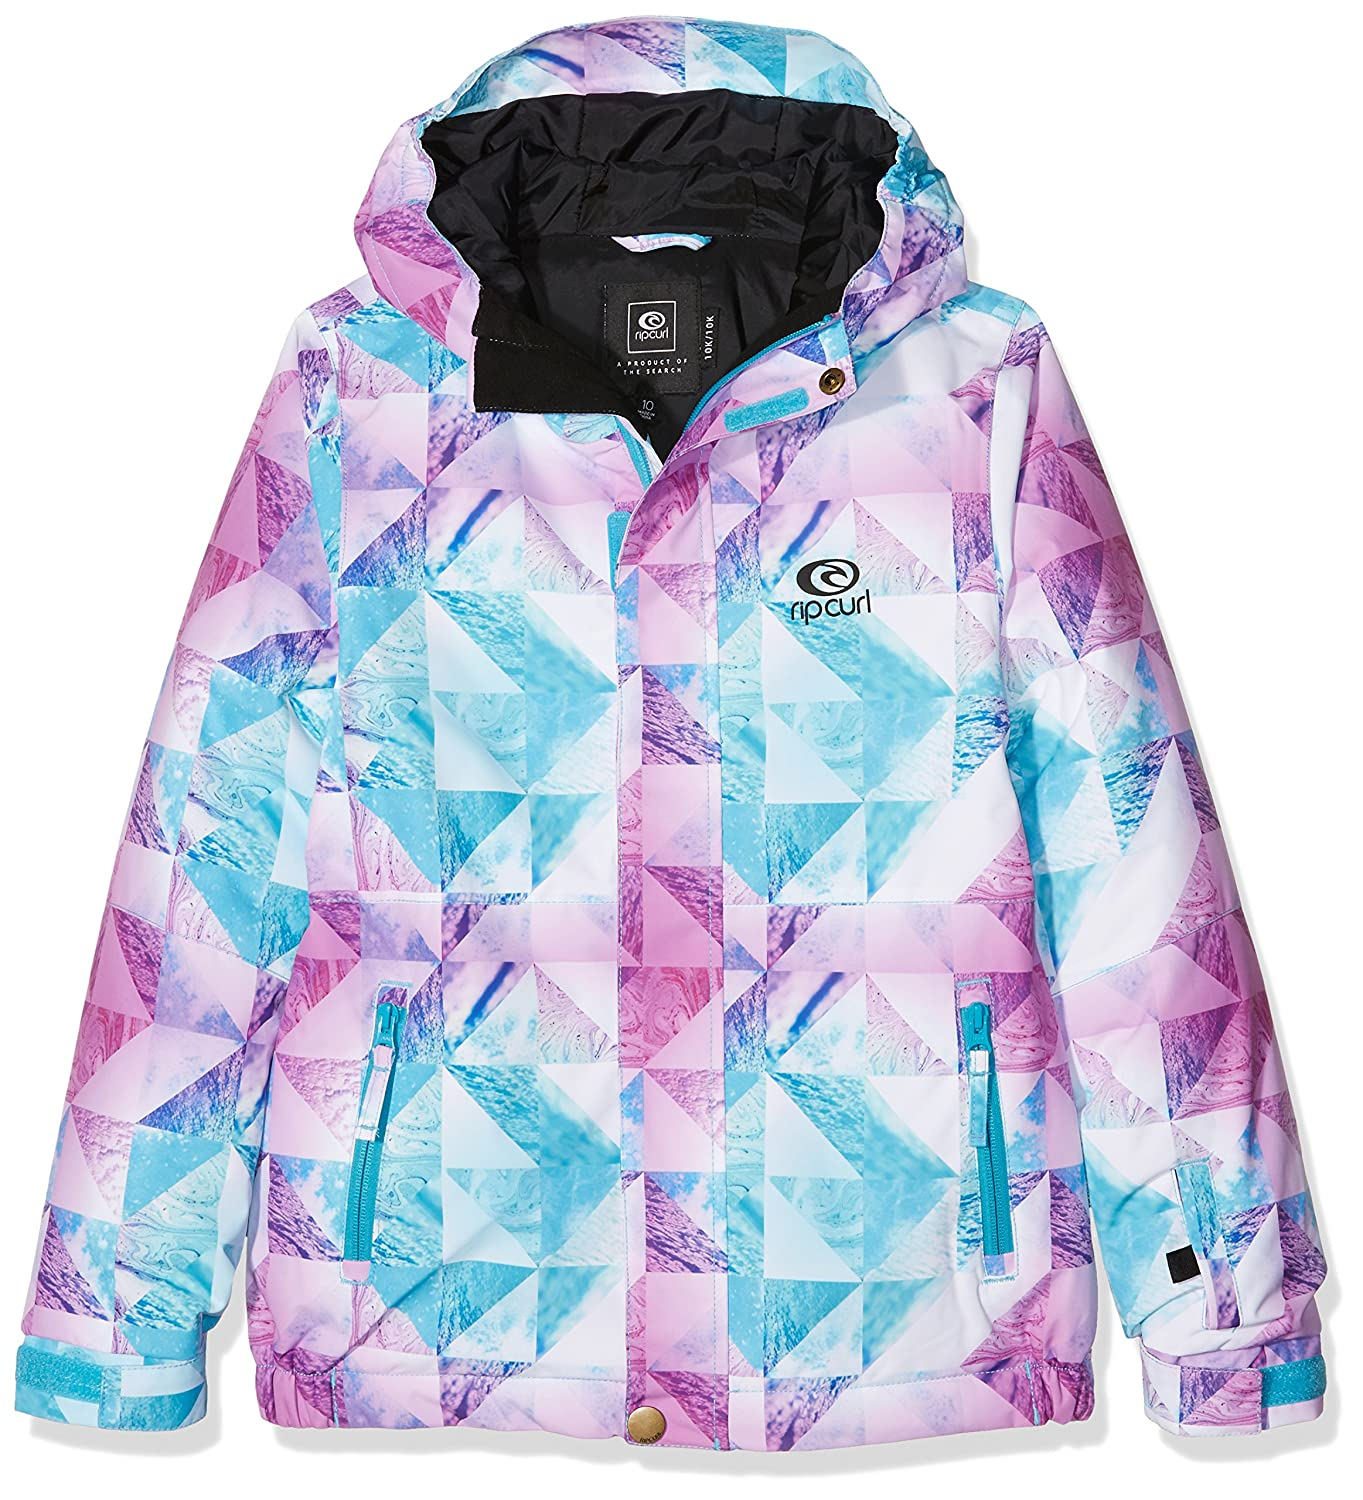 e46e64d33 RIP CURL Enigma Printed Jr Jkt Girl's Snow Jacket: Amazon.co.uk ...